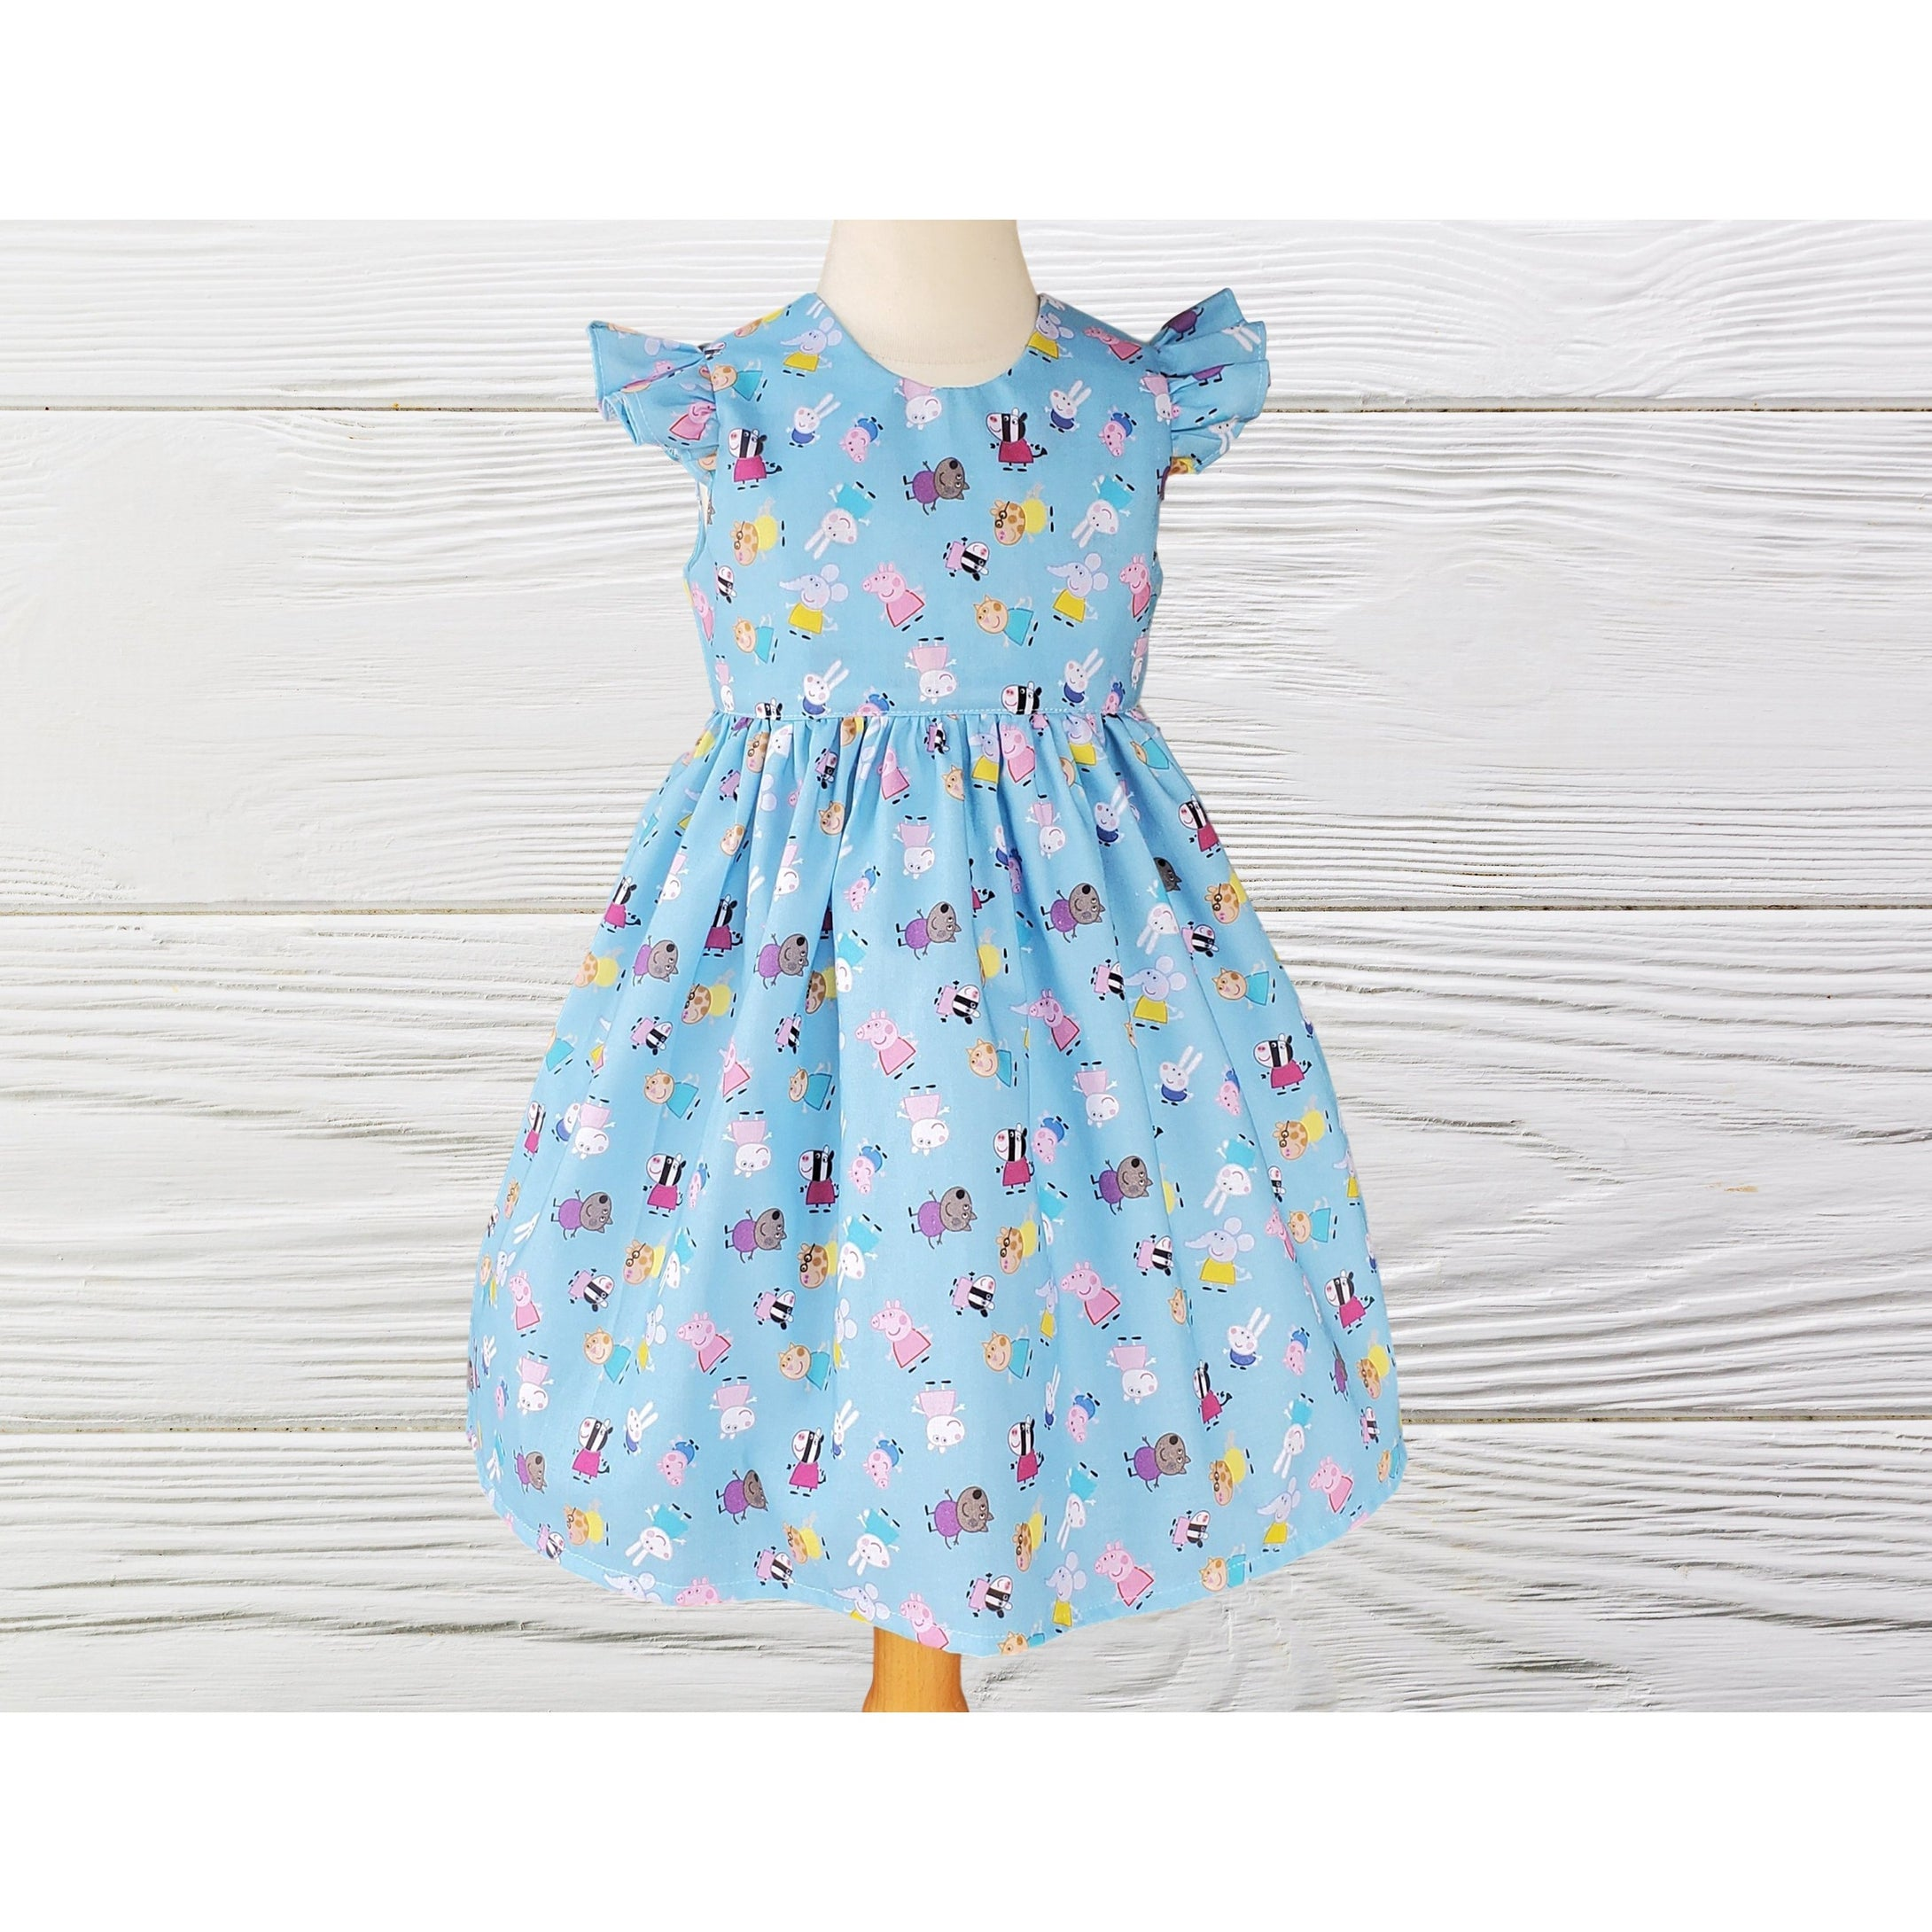 PEPPA PIG DRESS - Cute  dress - Girls Peppa Pig dress - Baby Party Dress - Girl Toddler Clothes -Peppa girls dress - Outfit For Baby Girl